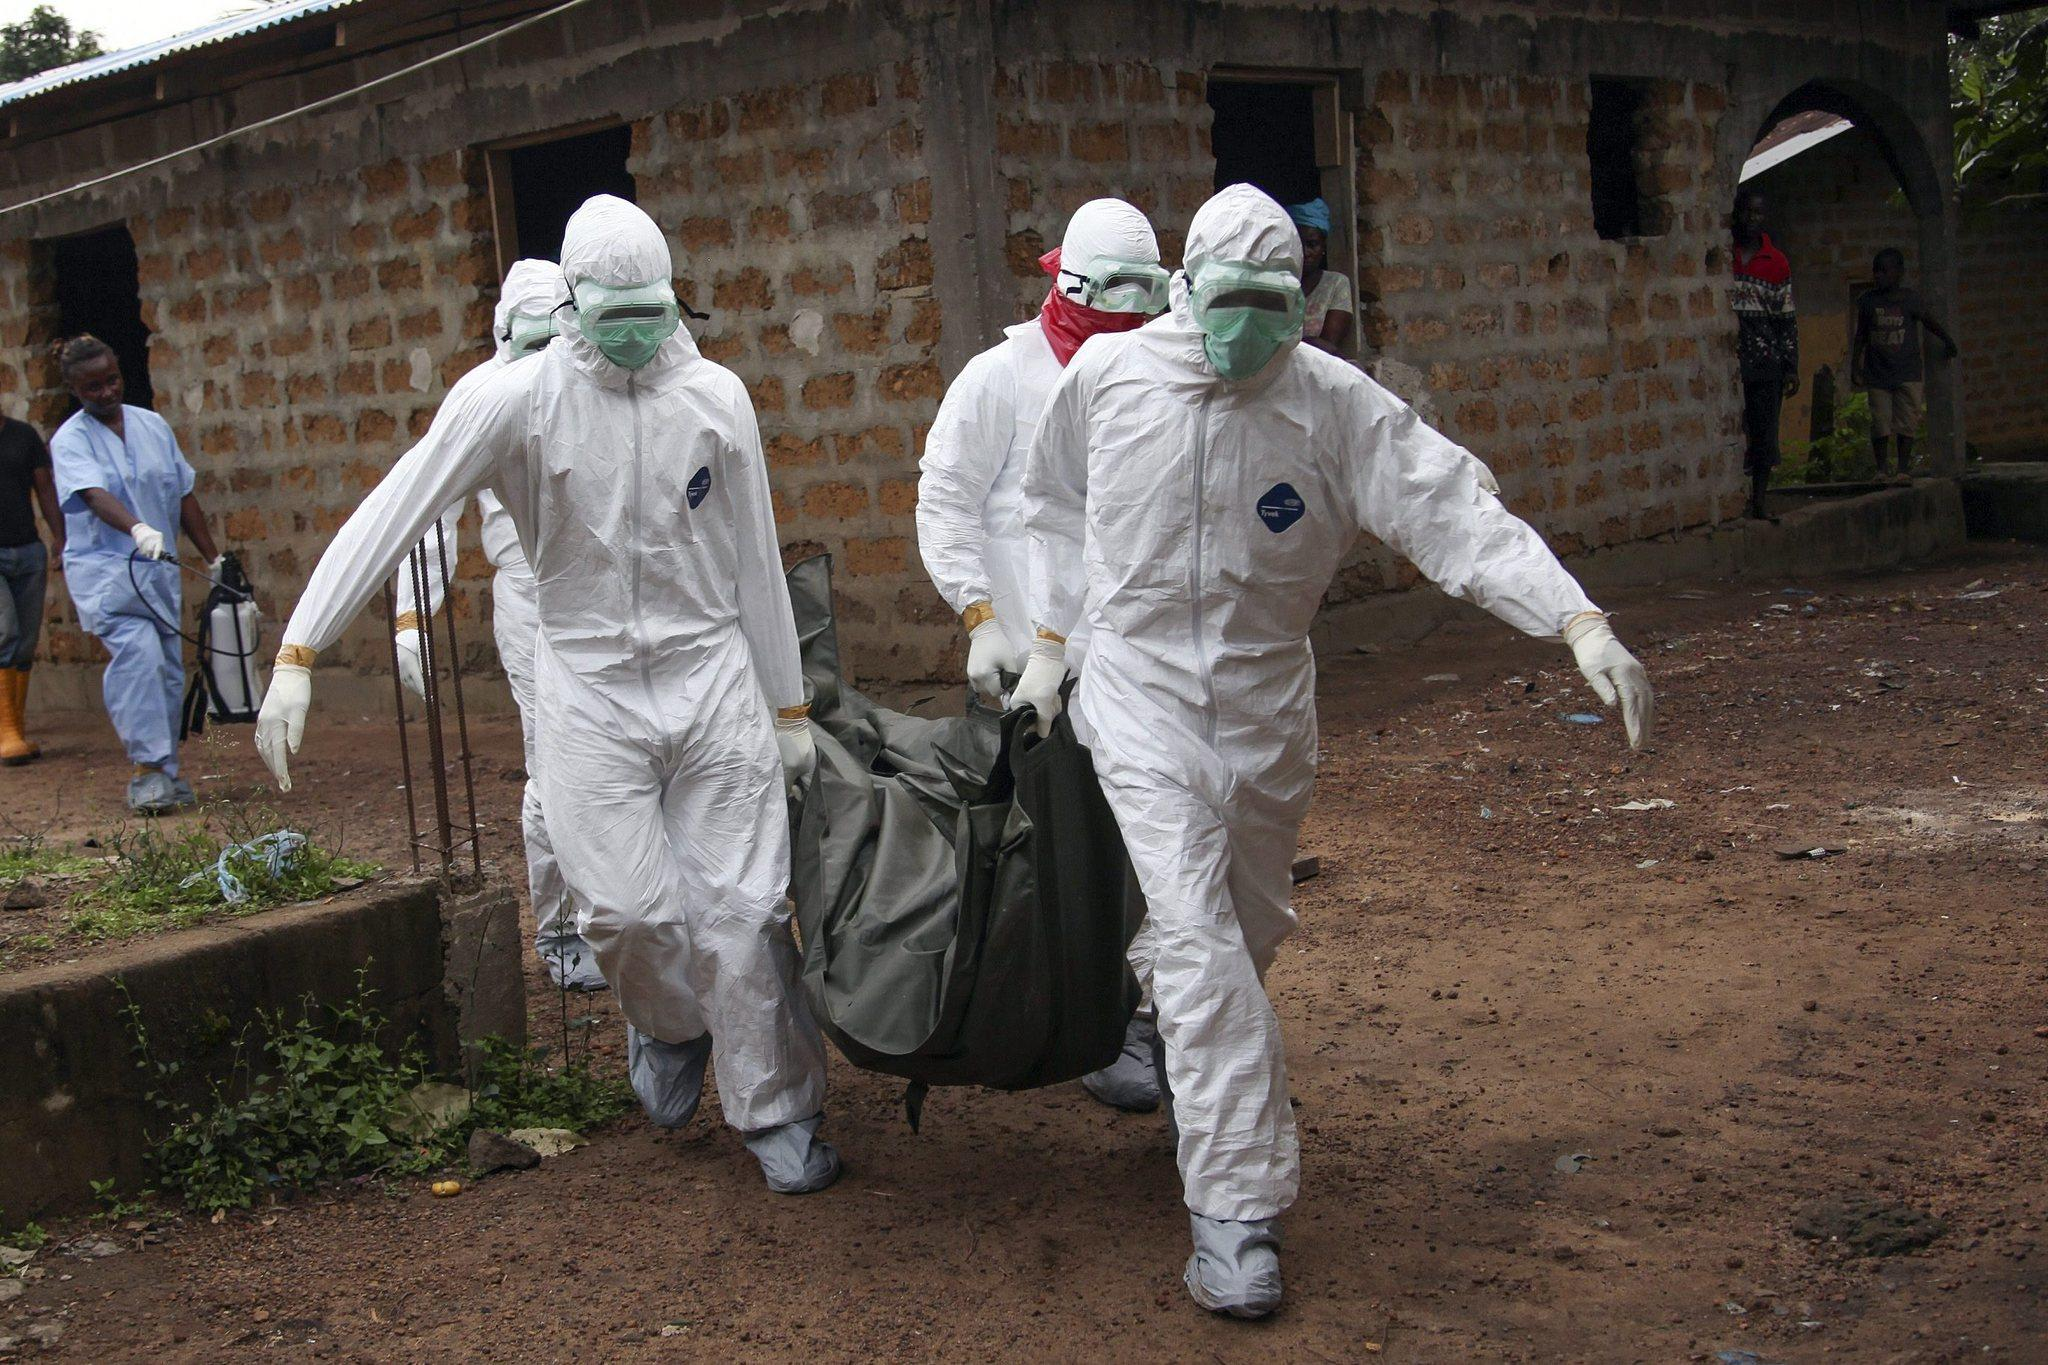 ebola exaggerations display ignorant stereotypes of africa of the